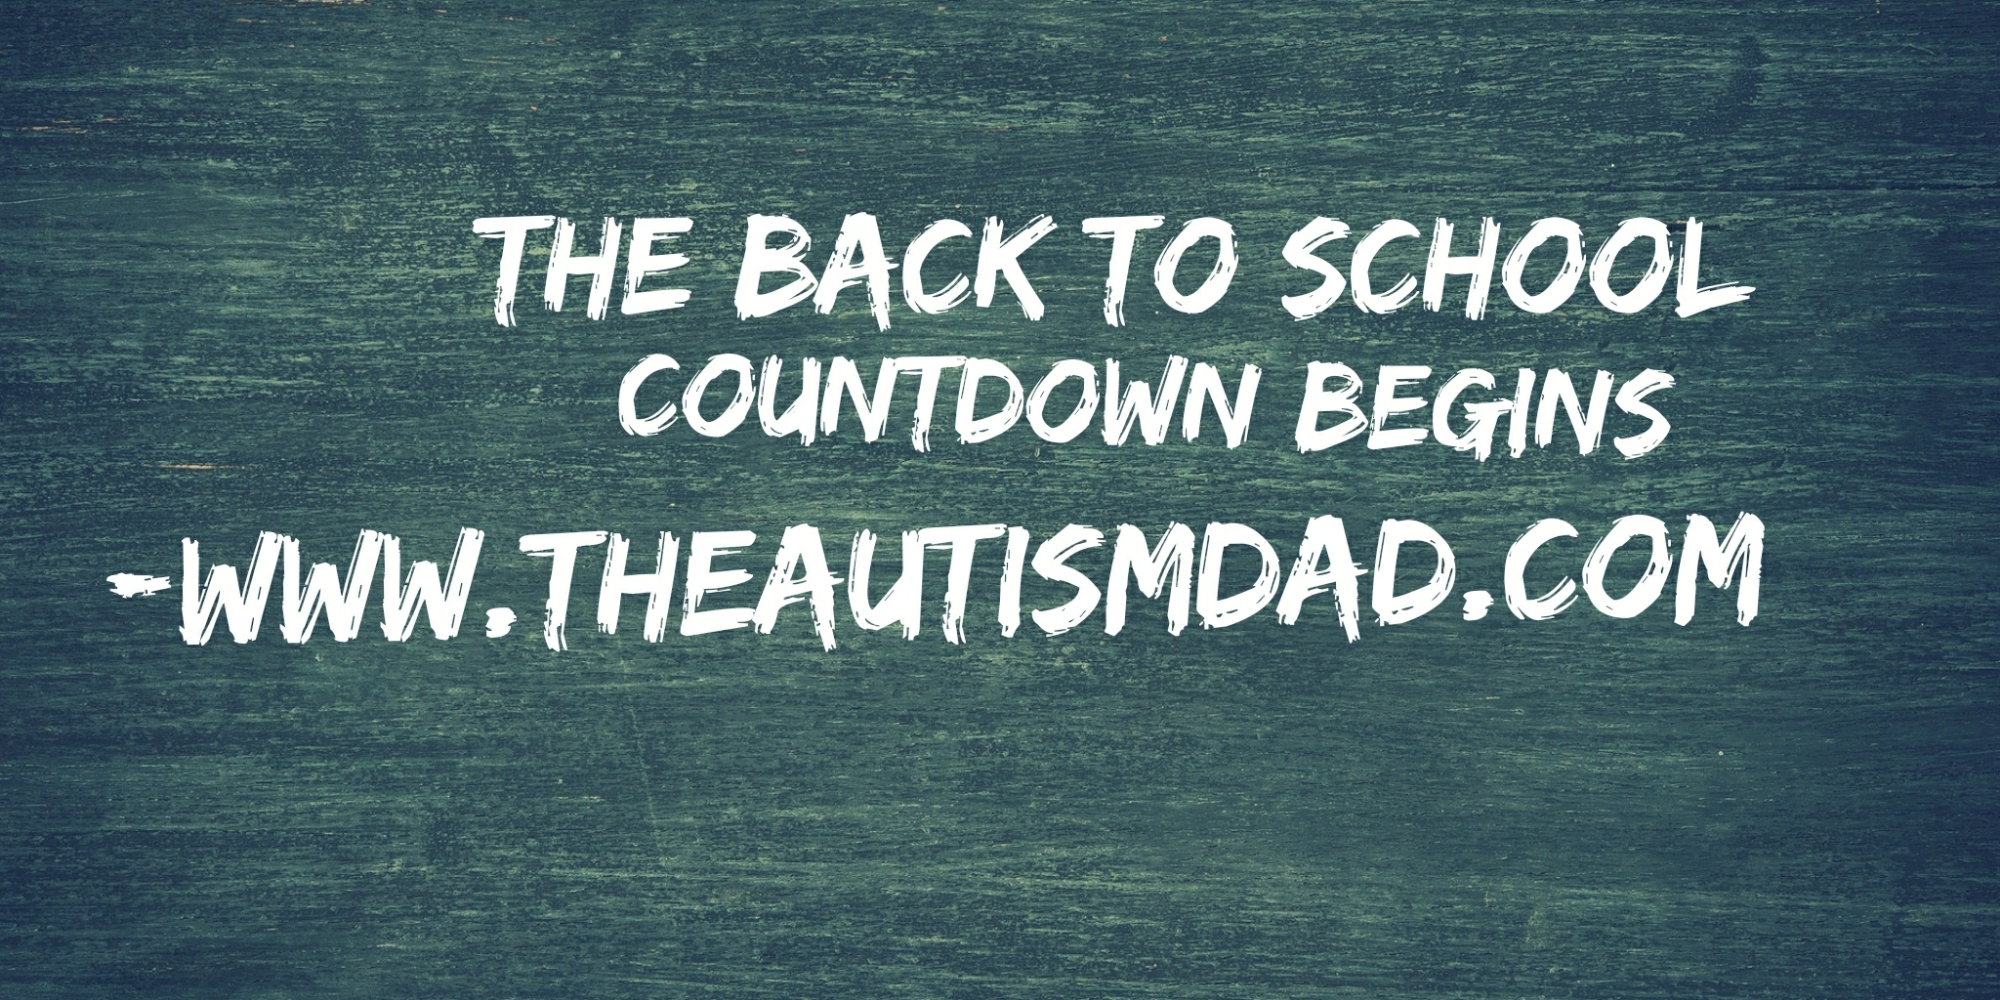 The back to school countdown begins